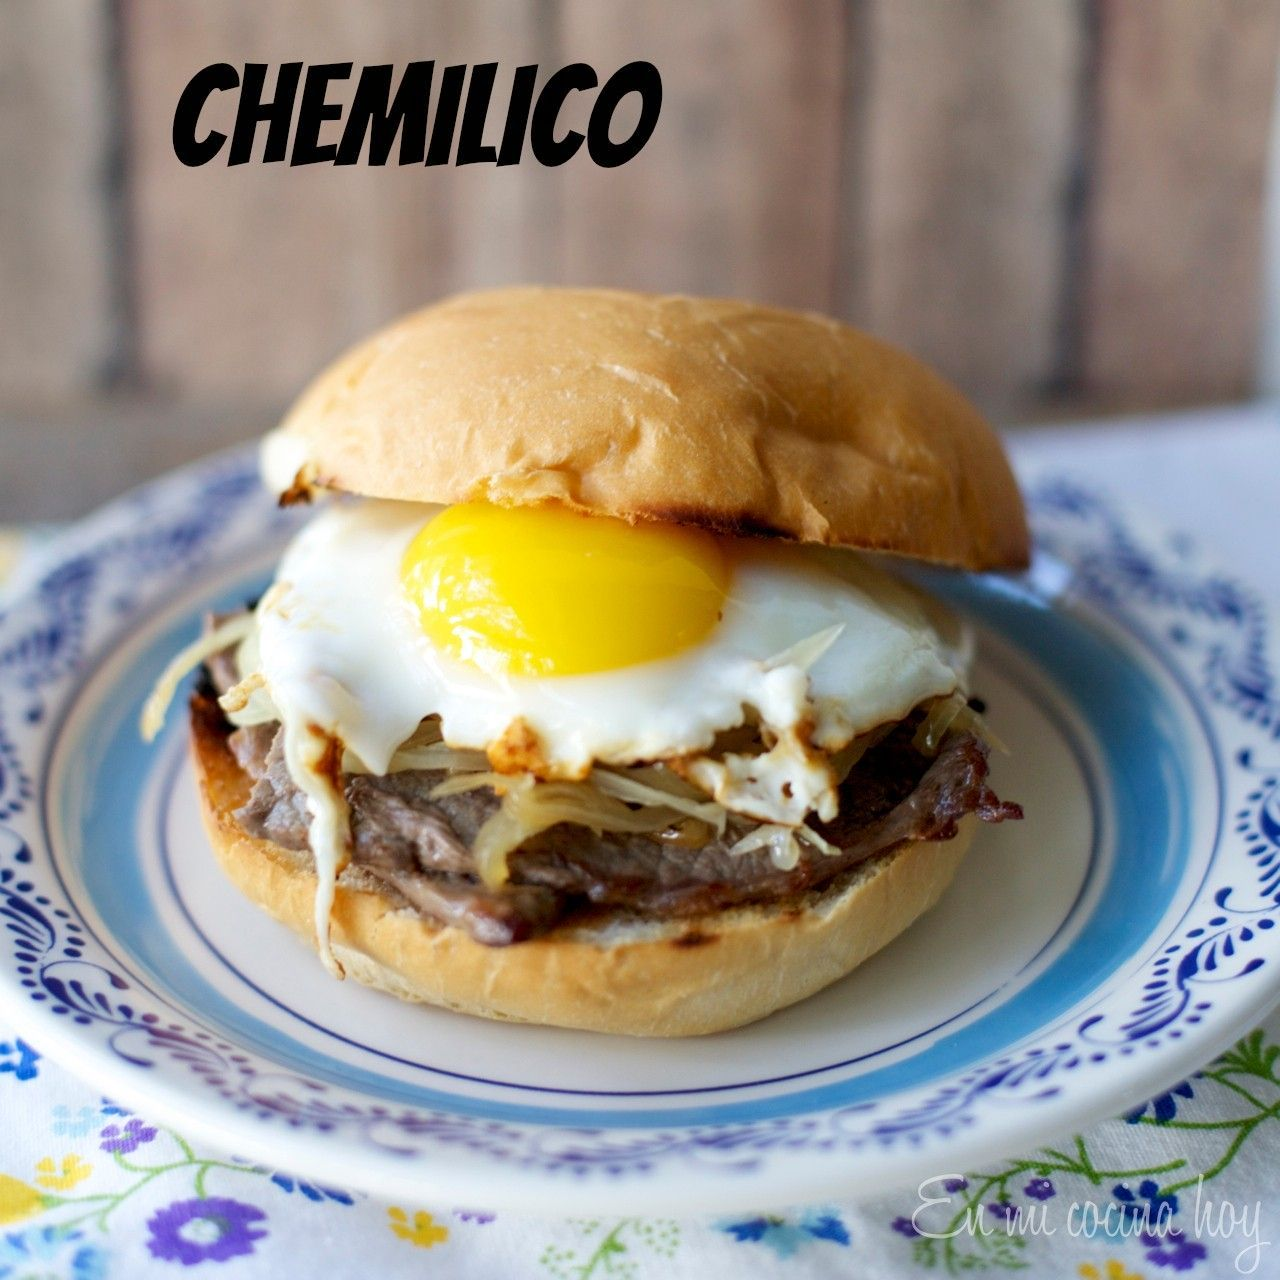 Chemilico chile pinterest chilean food yummy food and food chemilico a traditional chilean sandwich a thin steak sauted onions and a sunny side up egg recipe in spanish and english forumfinder Image collections